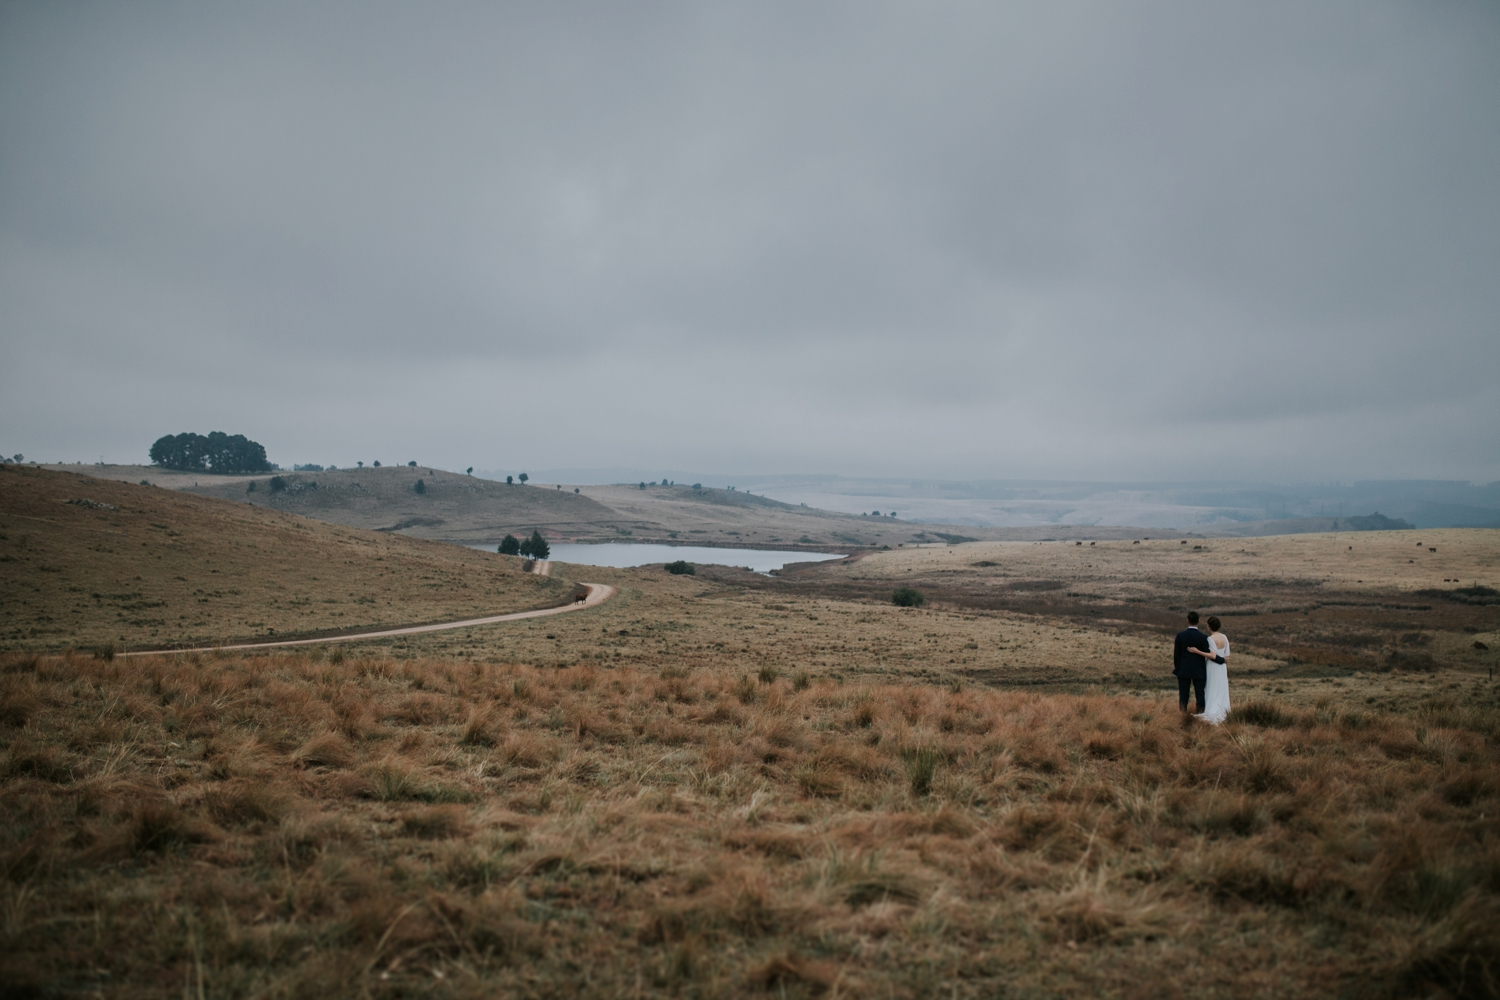 Bride and groom look at epic landscape view during wedding photography session in Vancouver